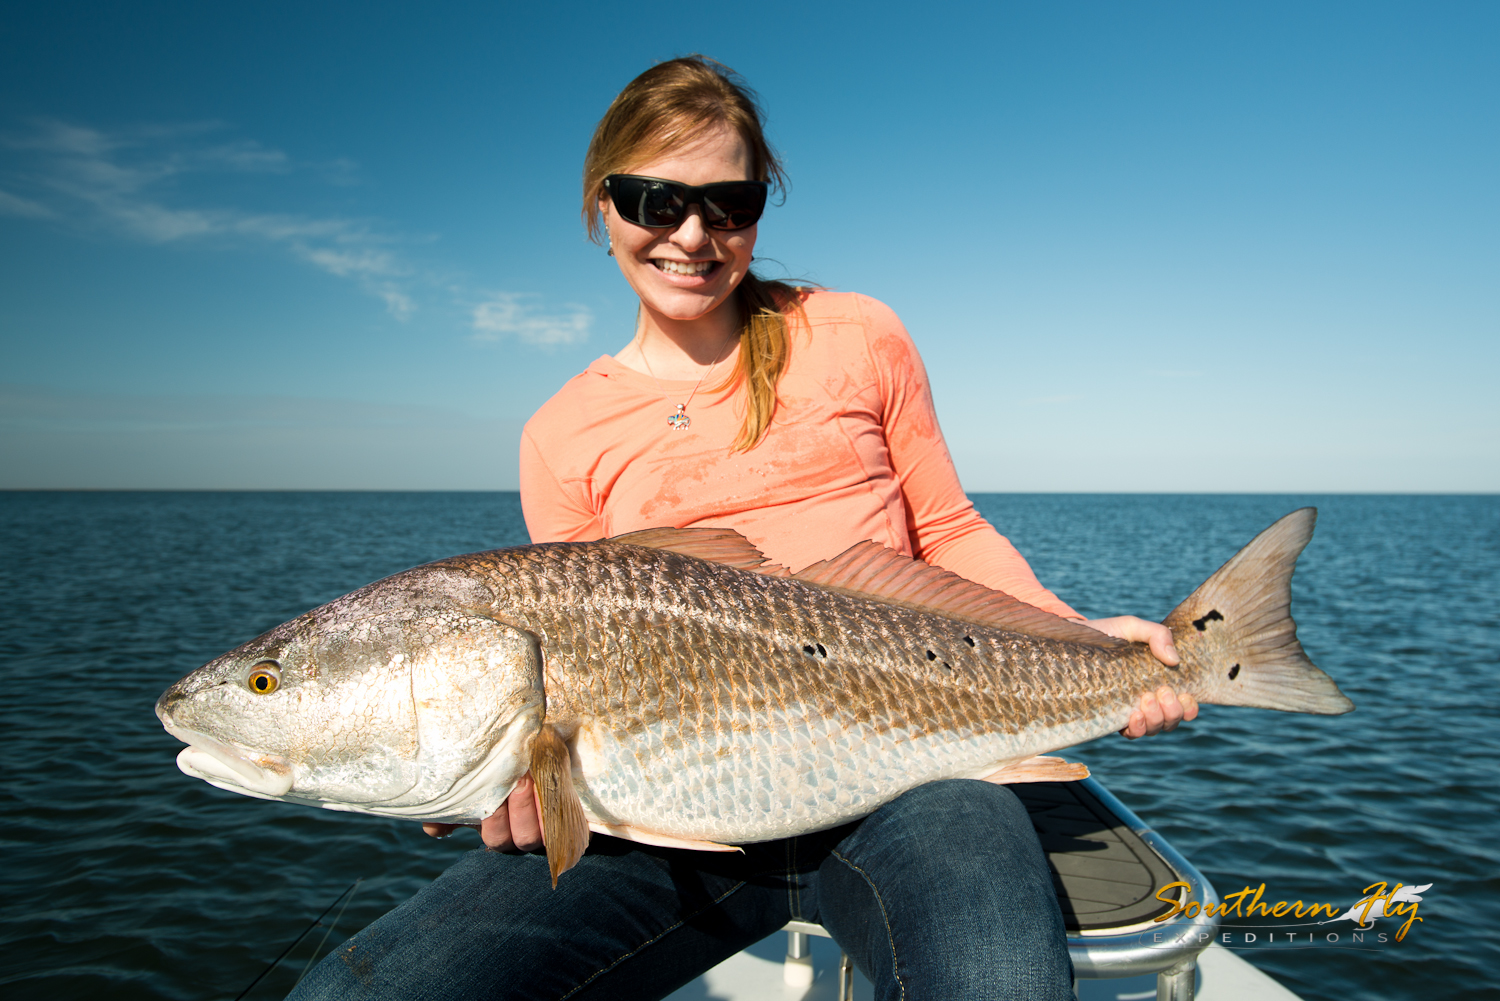 fly fishing venice louisiana by southern fly expeditions and captain brandon keck